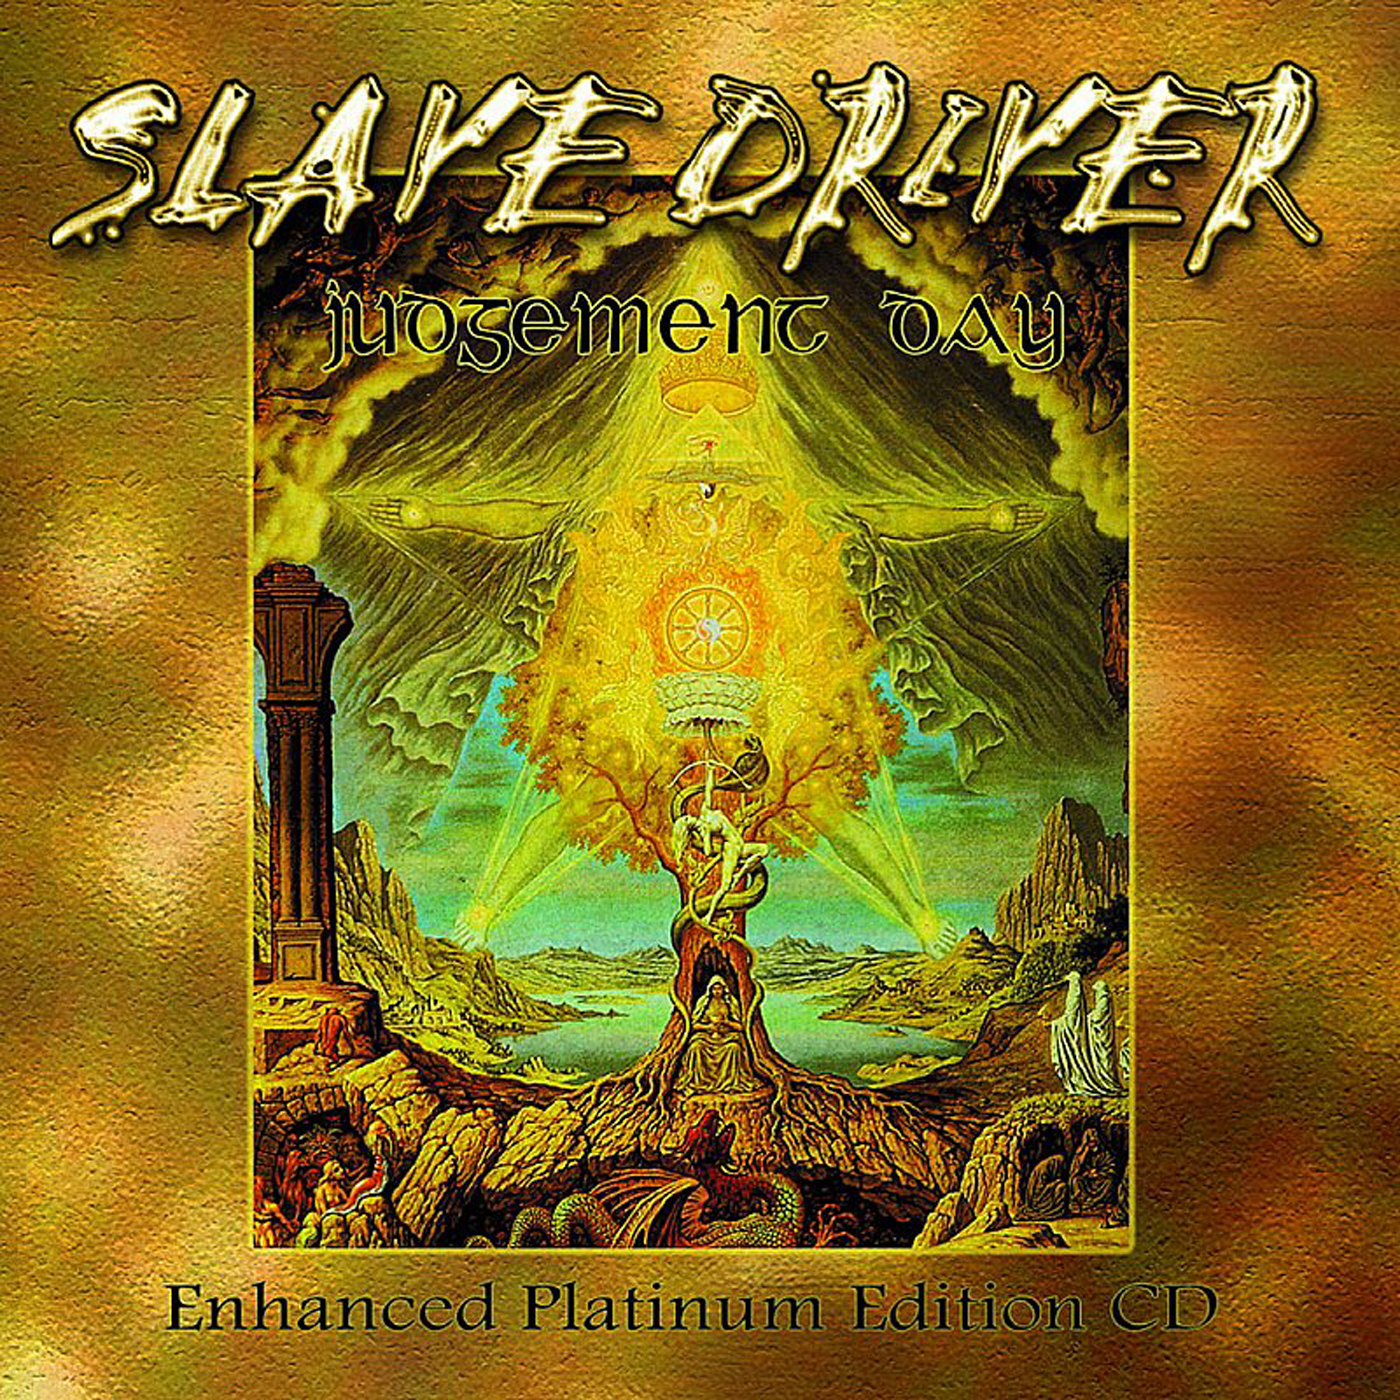 Judgement Day by Slave Driver